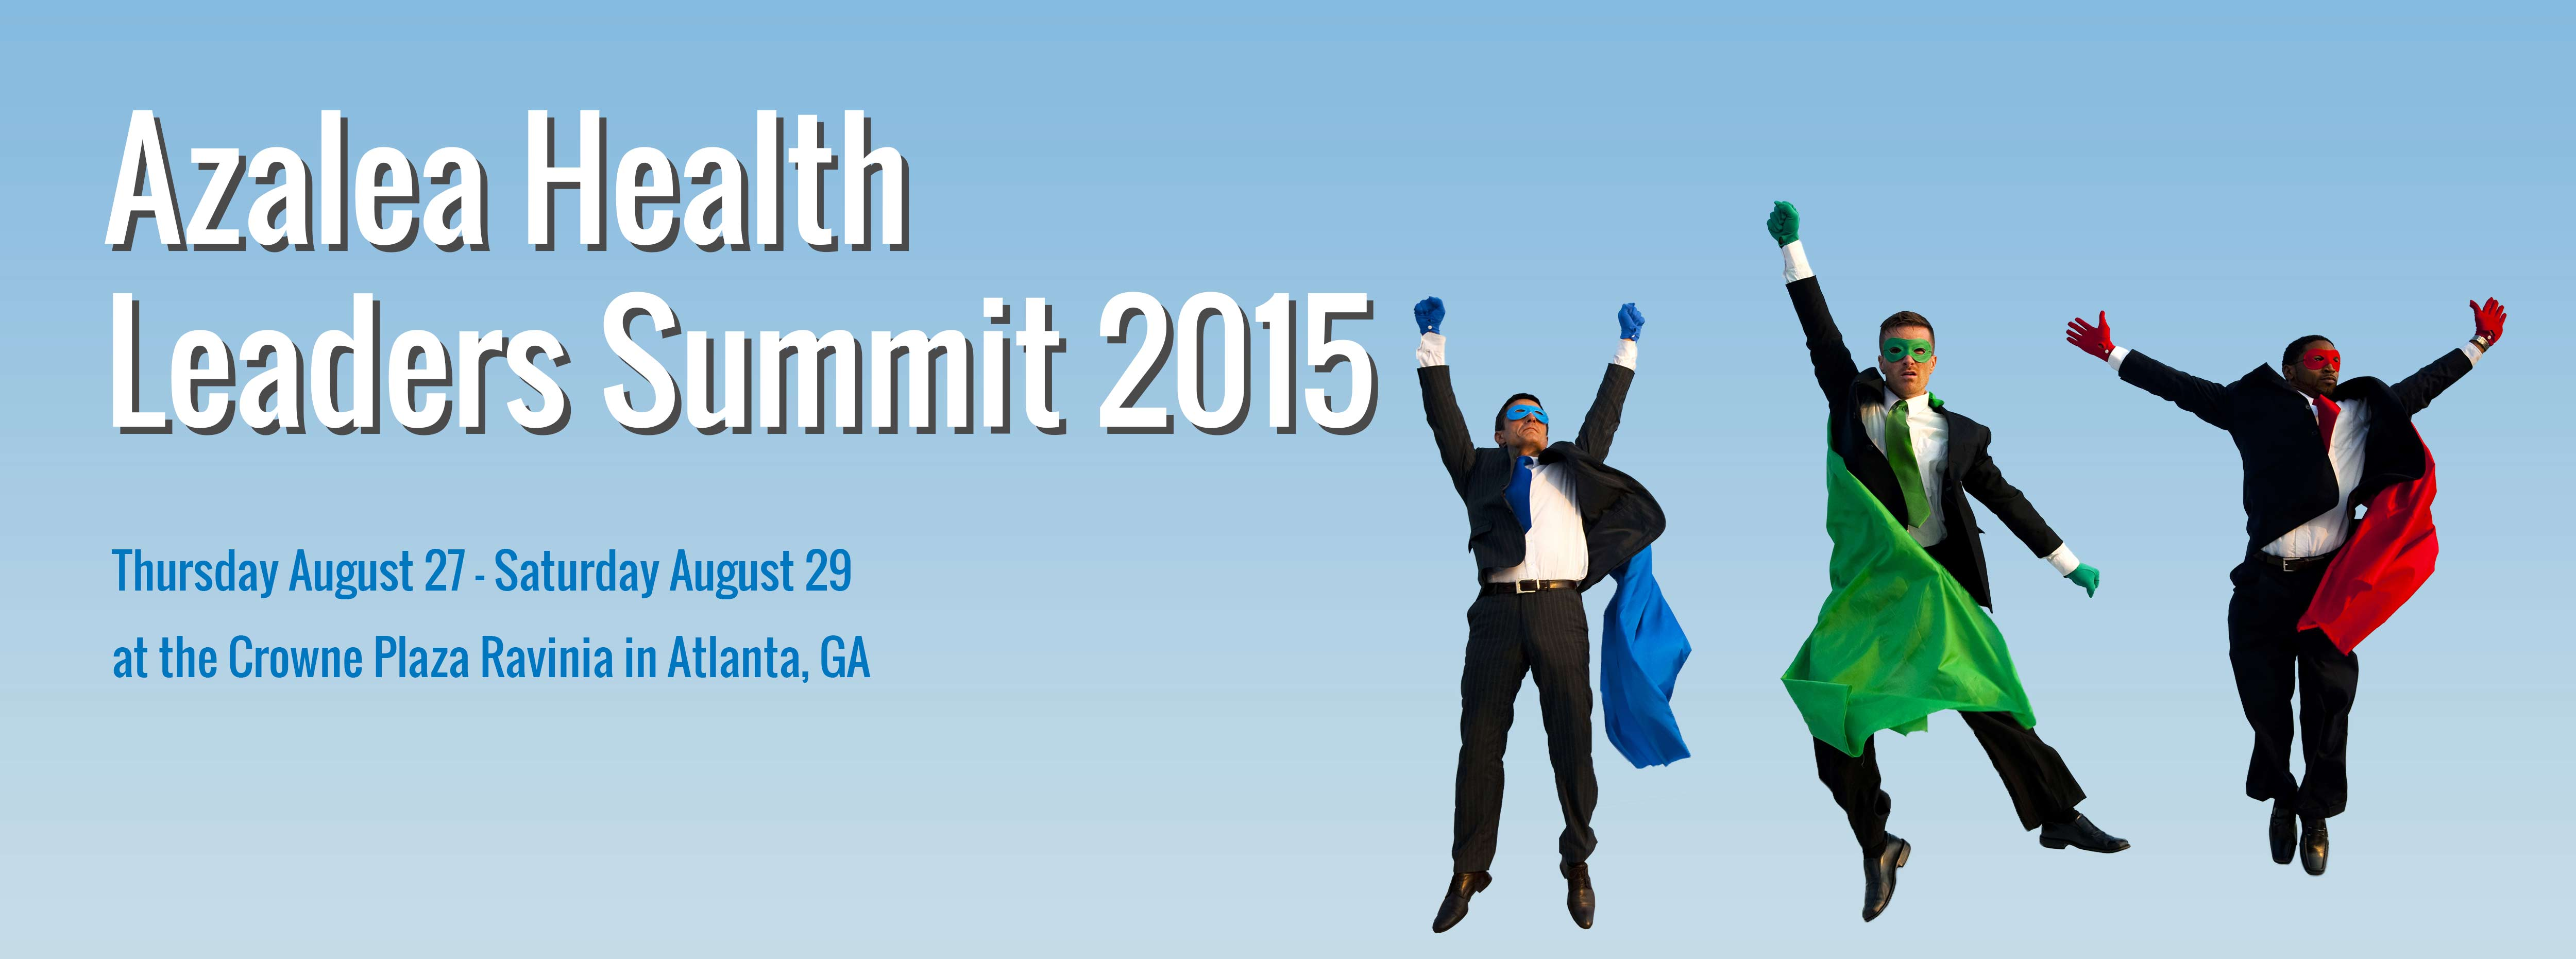 Azalea-Health-Banner-Leaders-Summit-2015